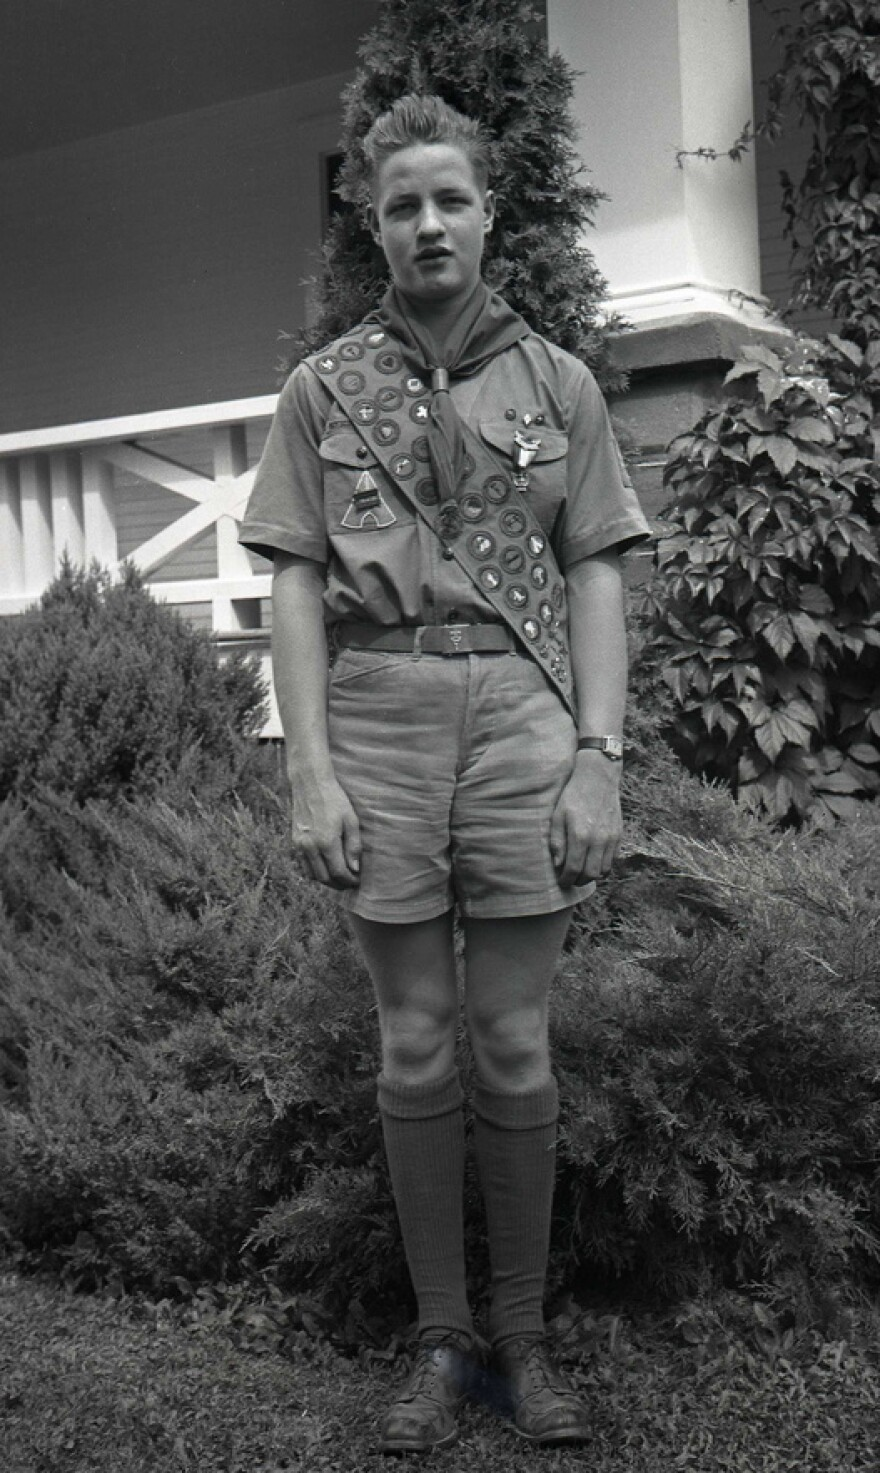 old-boy-scout-picture-flickr-user-born1945.jpg